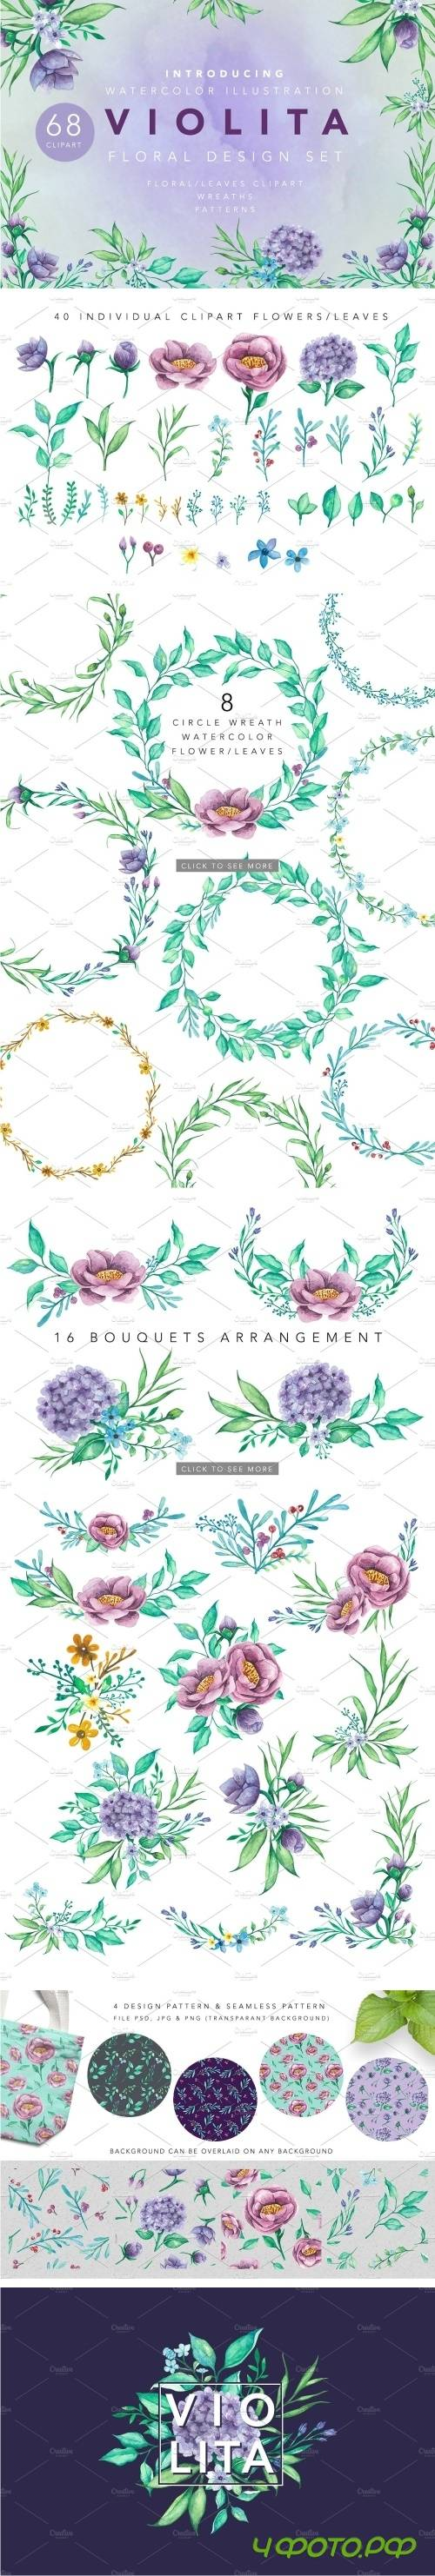 VIOLITA Floral Design Set Watercolor - 1860721